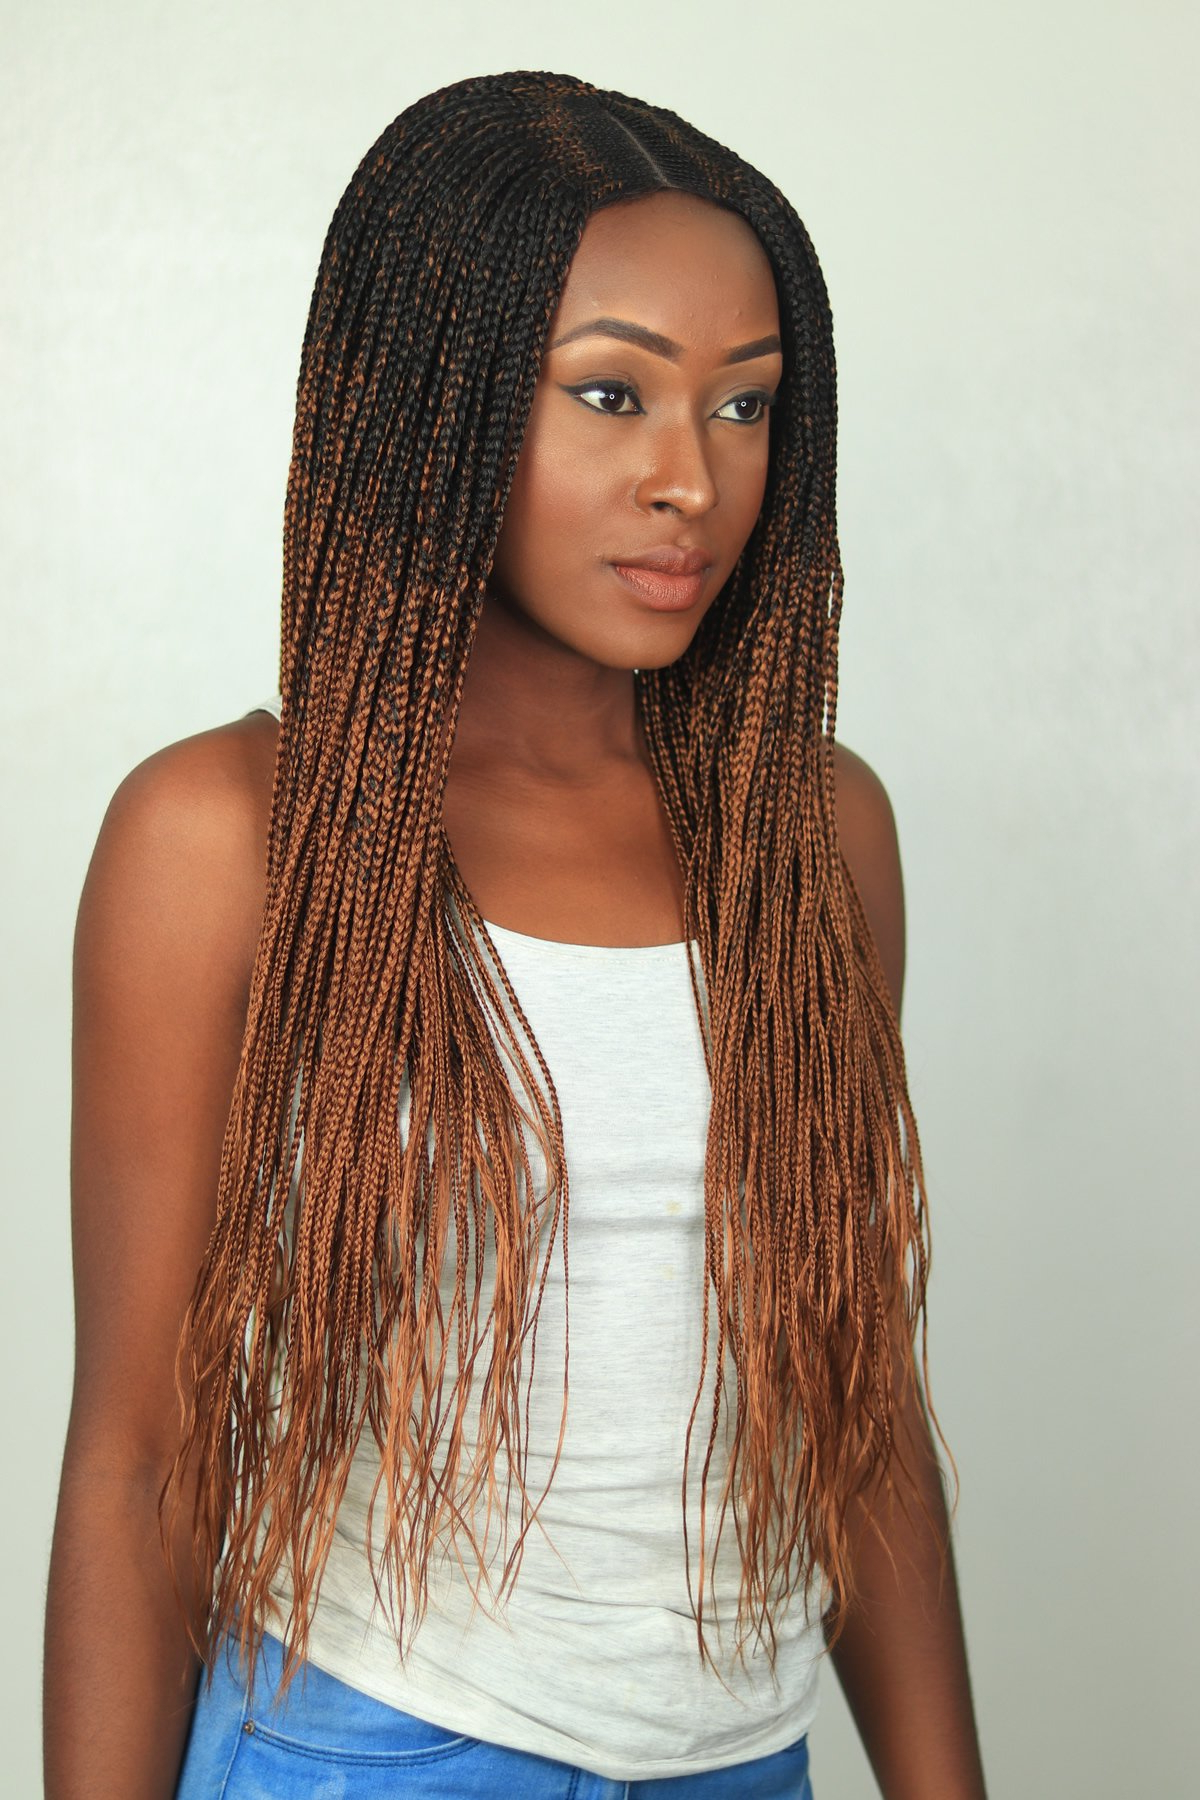 25 Charming Lemonade Braids To Rock Your Appearance Inside Popular Lemon Tinted Lemonade Braided Hairstyles (View 9 of 20)